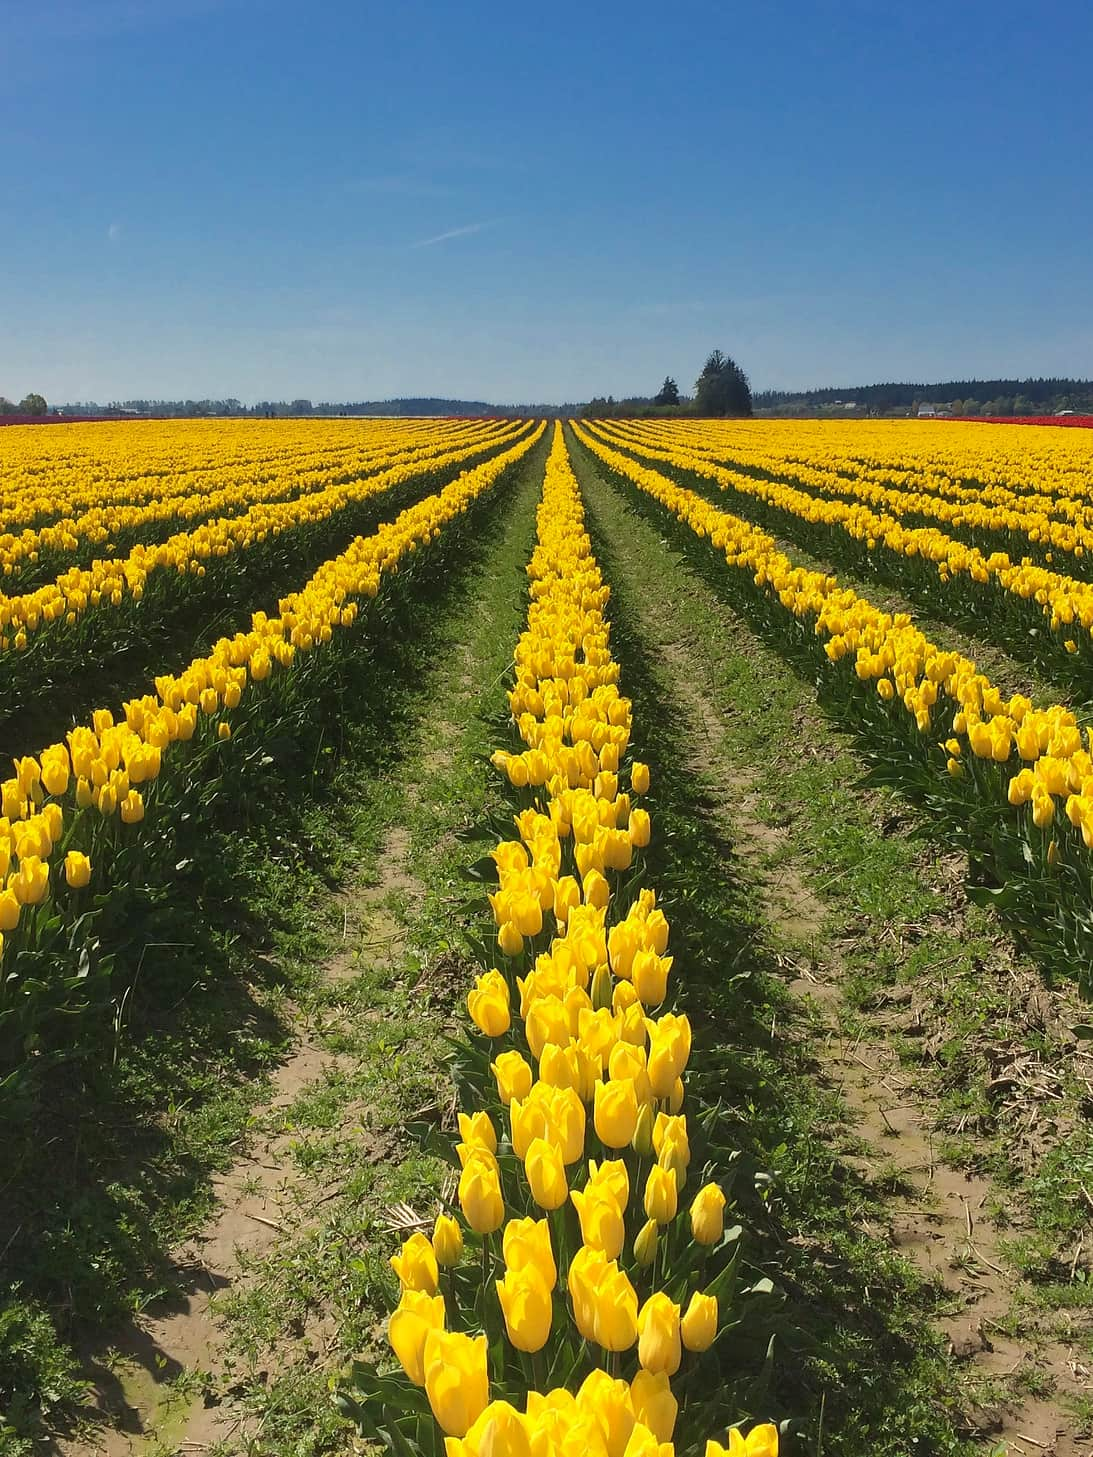 Yellow flowers at the Skagit Valley Tulip Festival